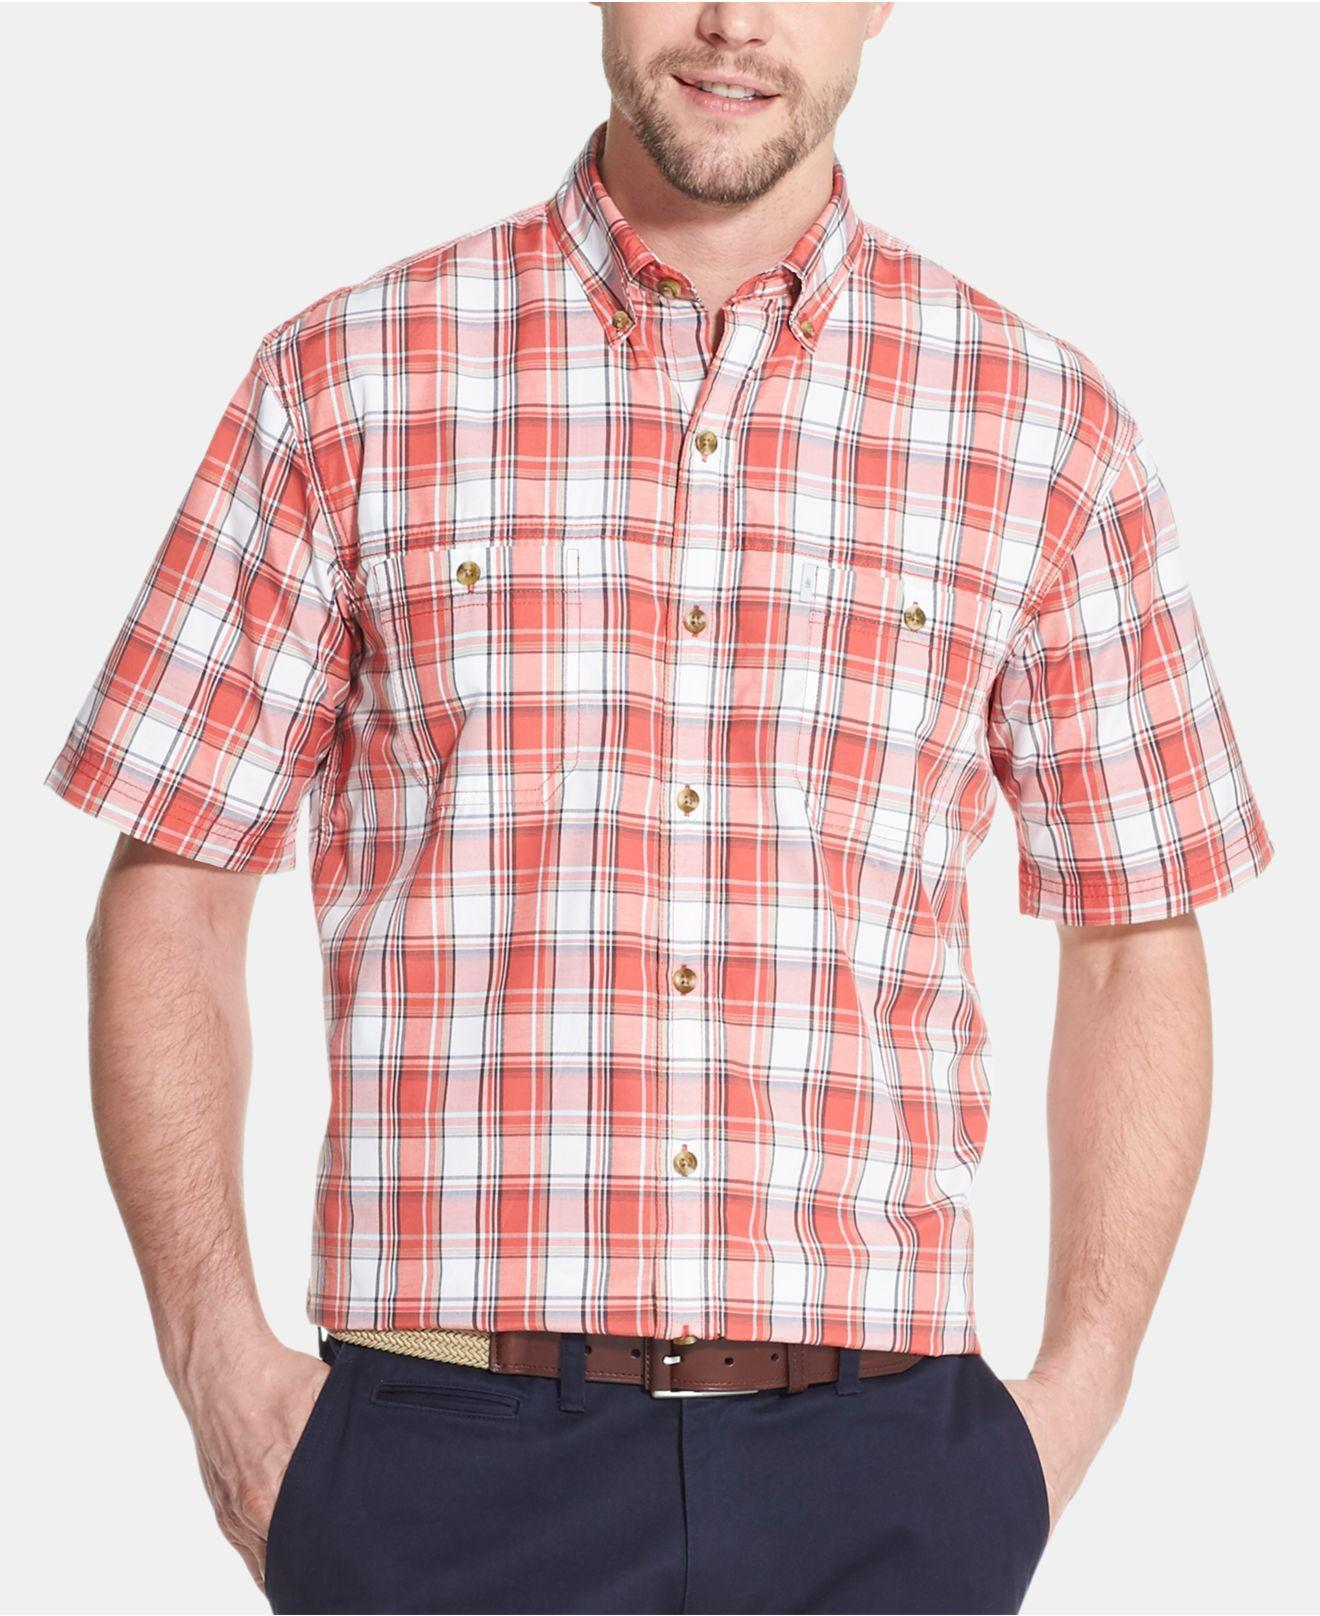 7ef5f9bb2e Lyst - G.H.BASS Bluewater Bay Plaid Shirt in Red for Men